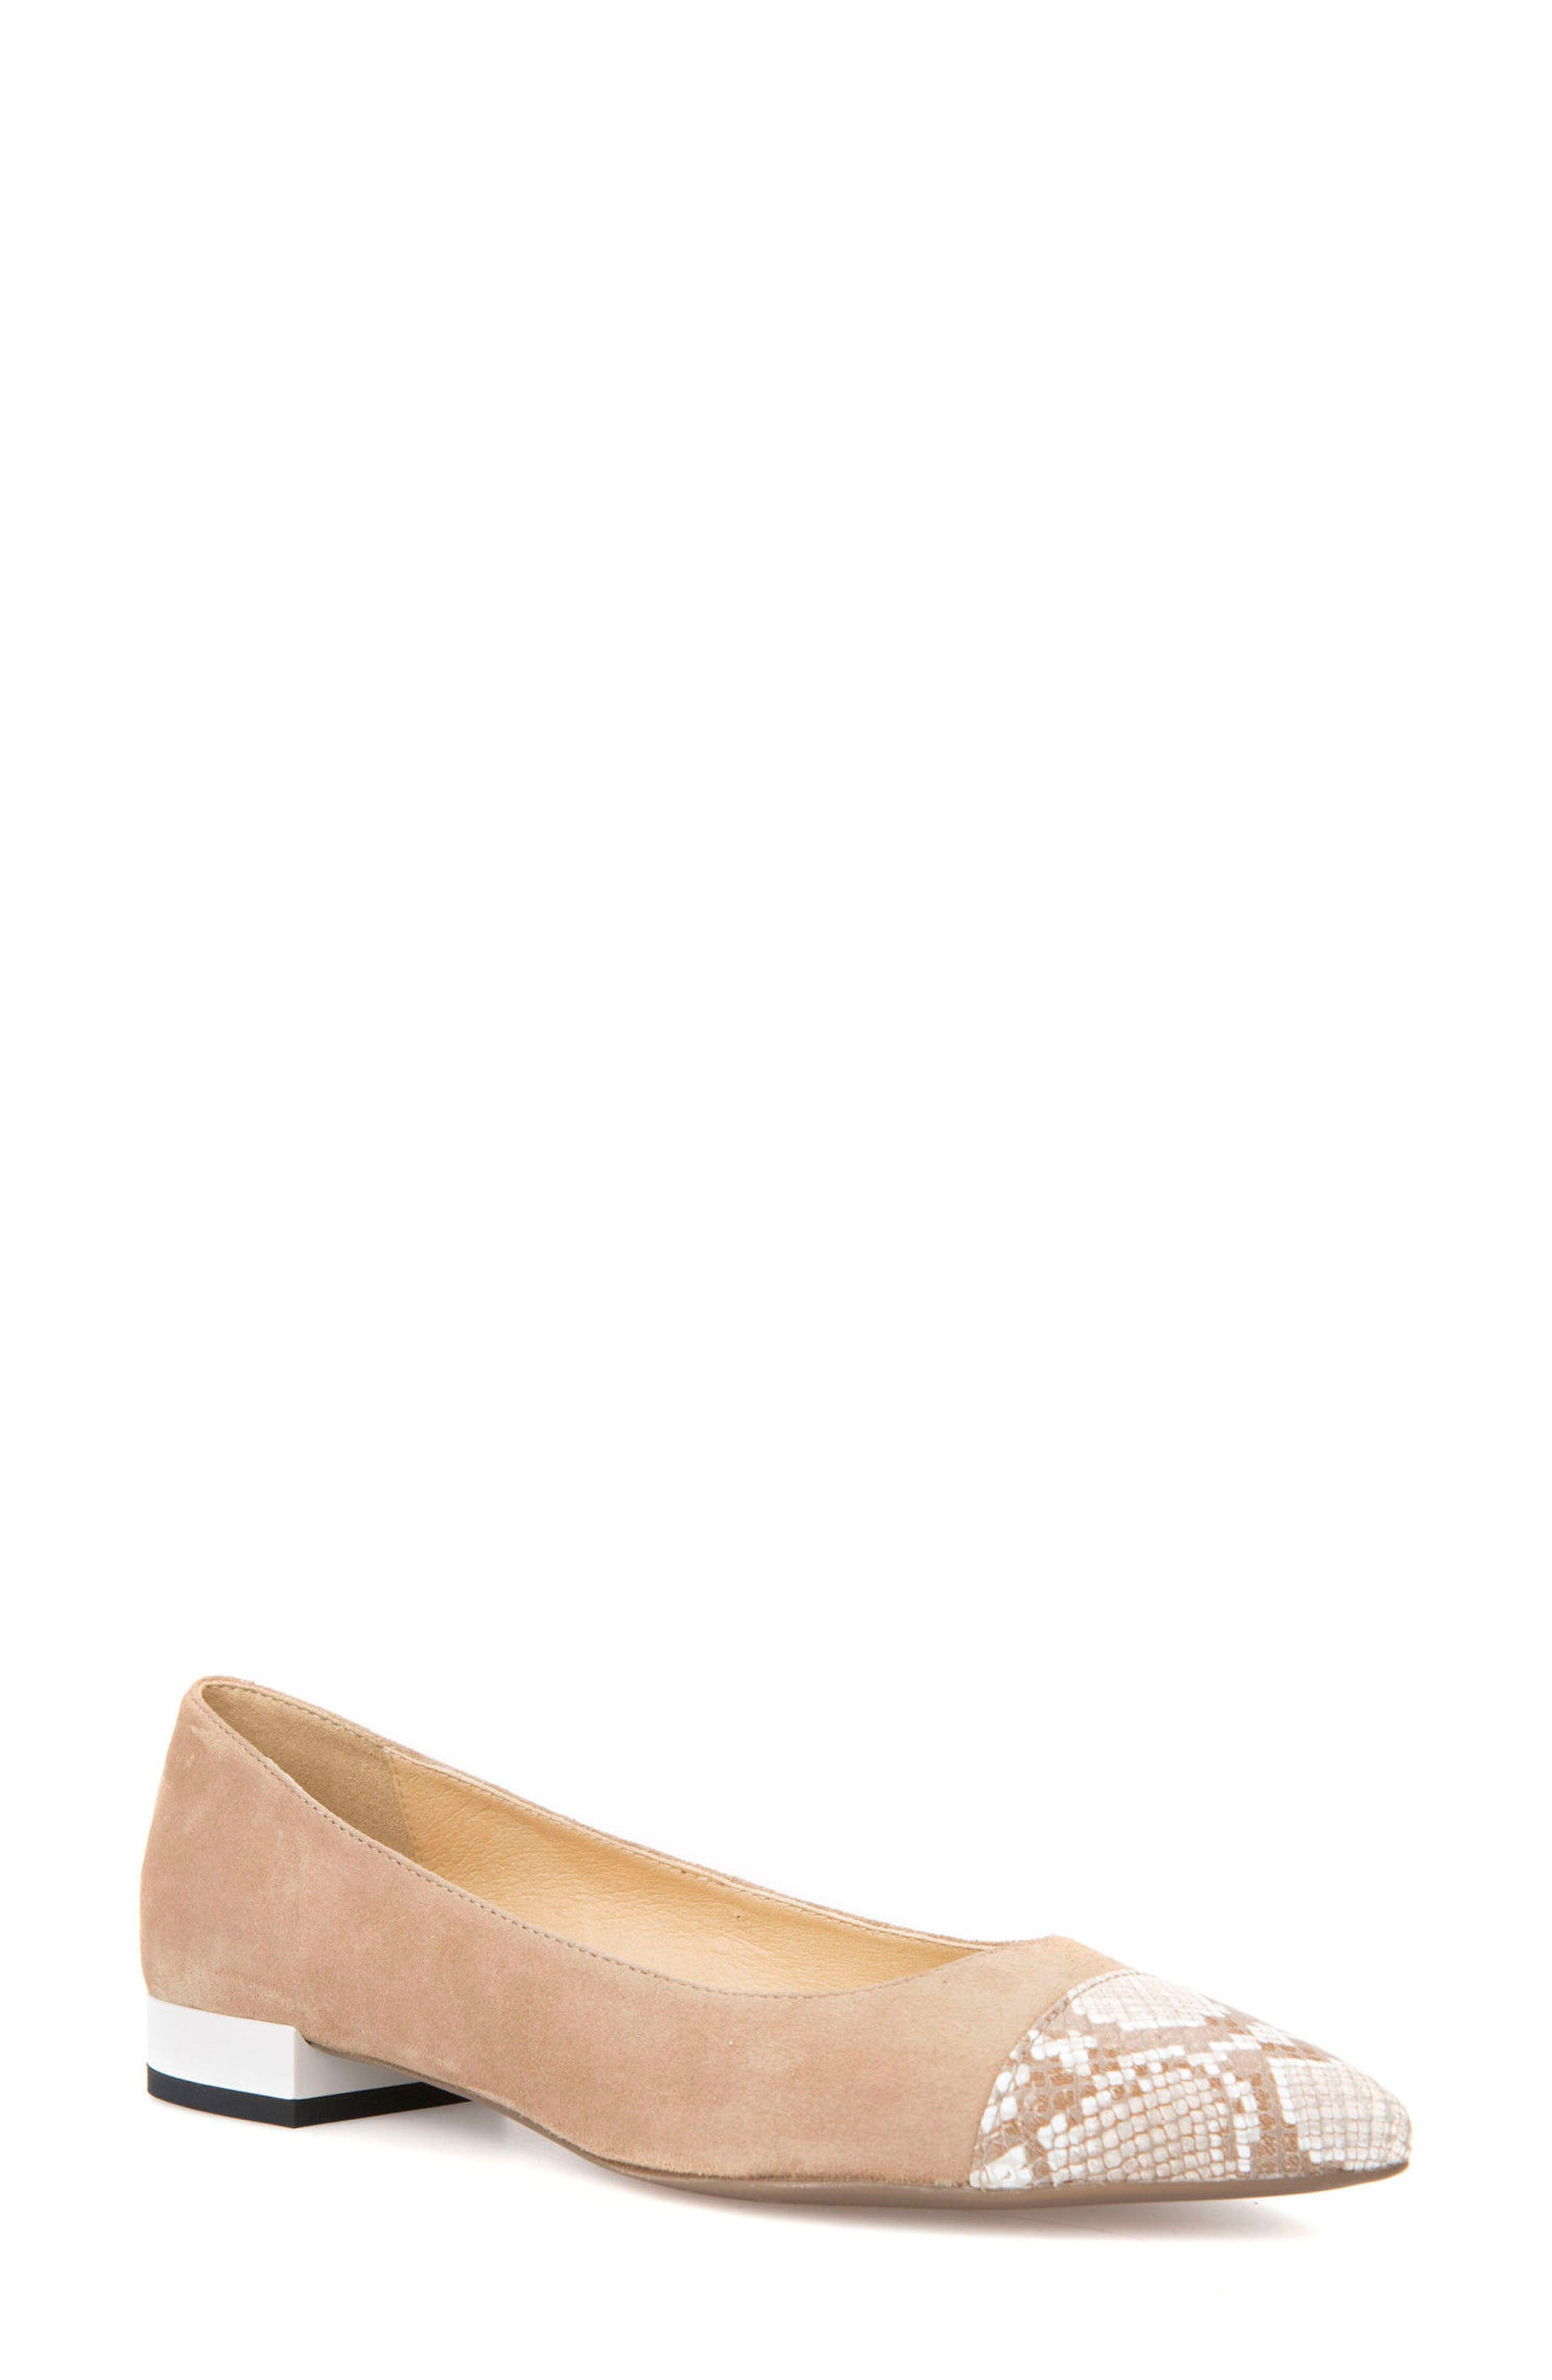 Charyssa Flat,                         Main,                         color, BEIGE LEATHER